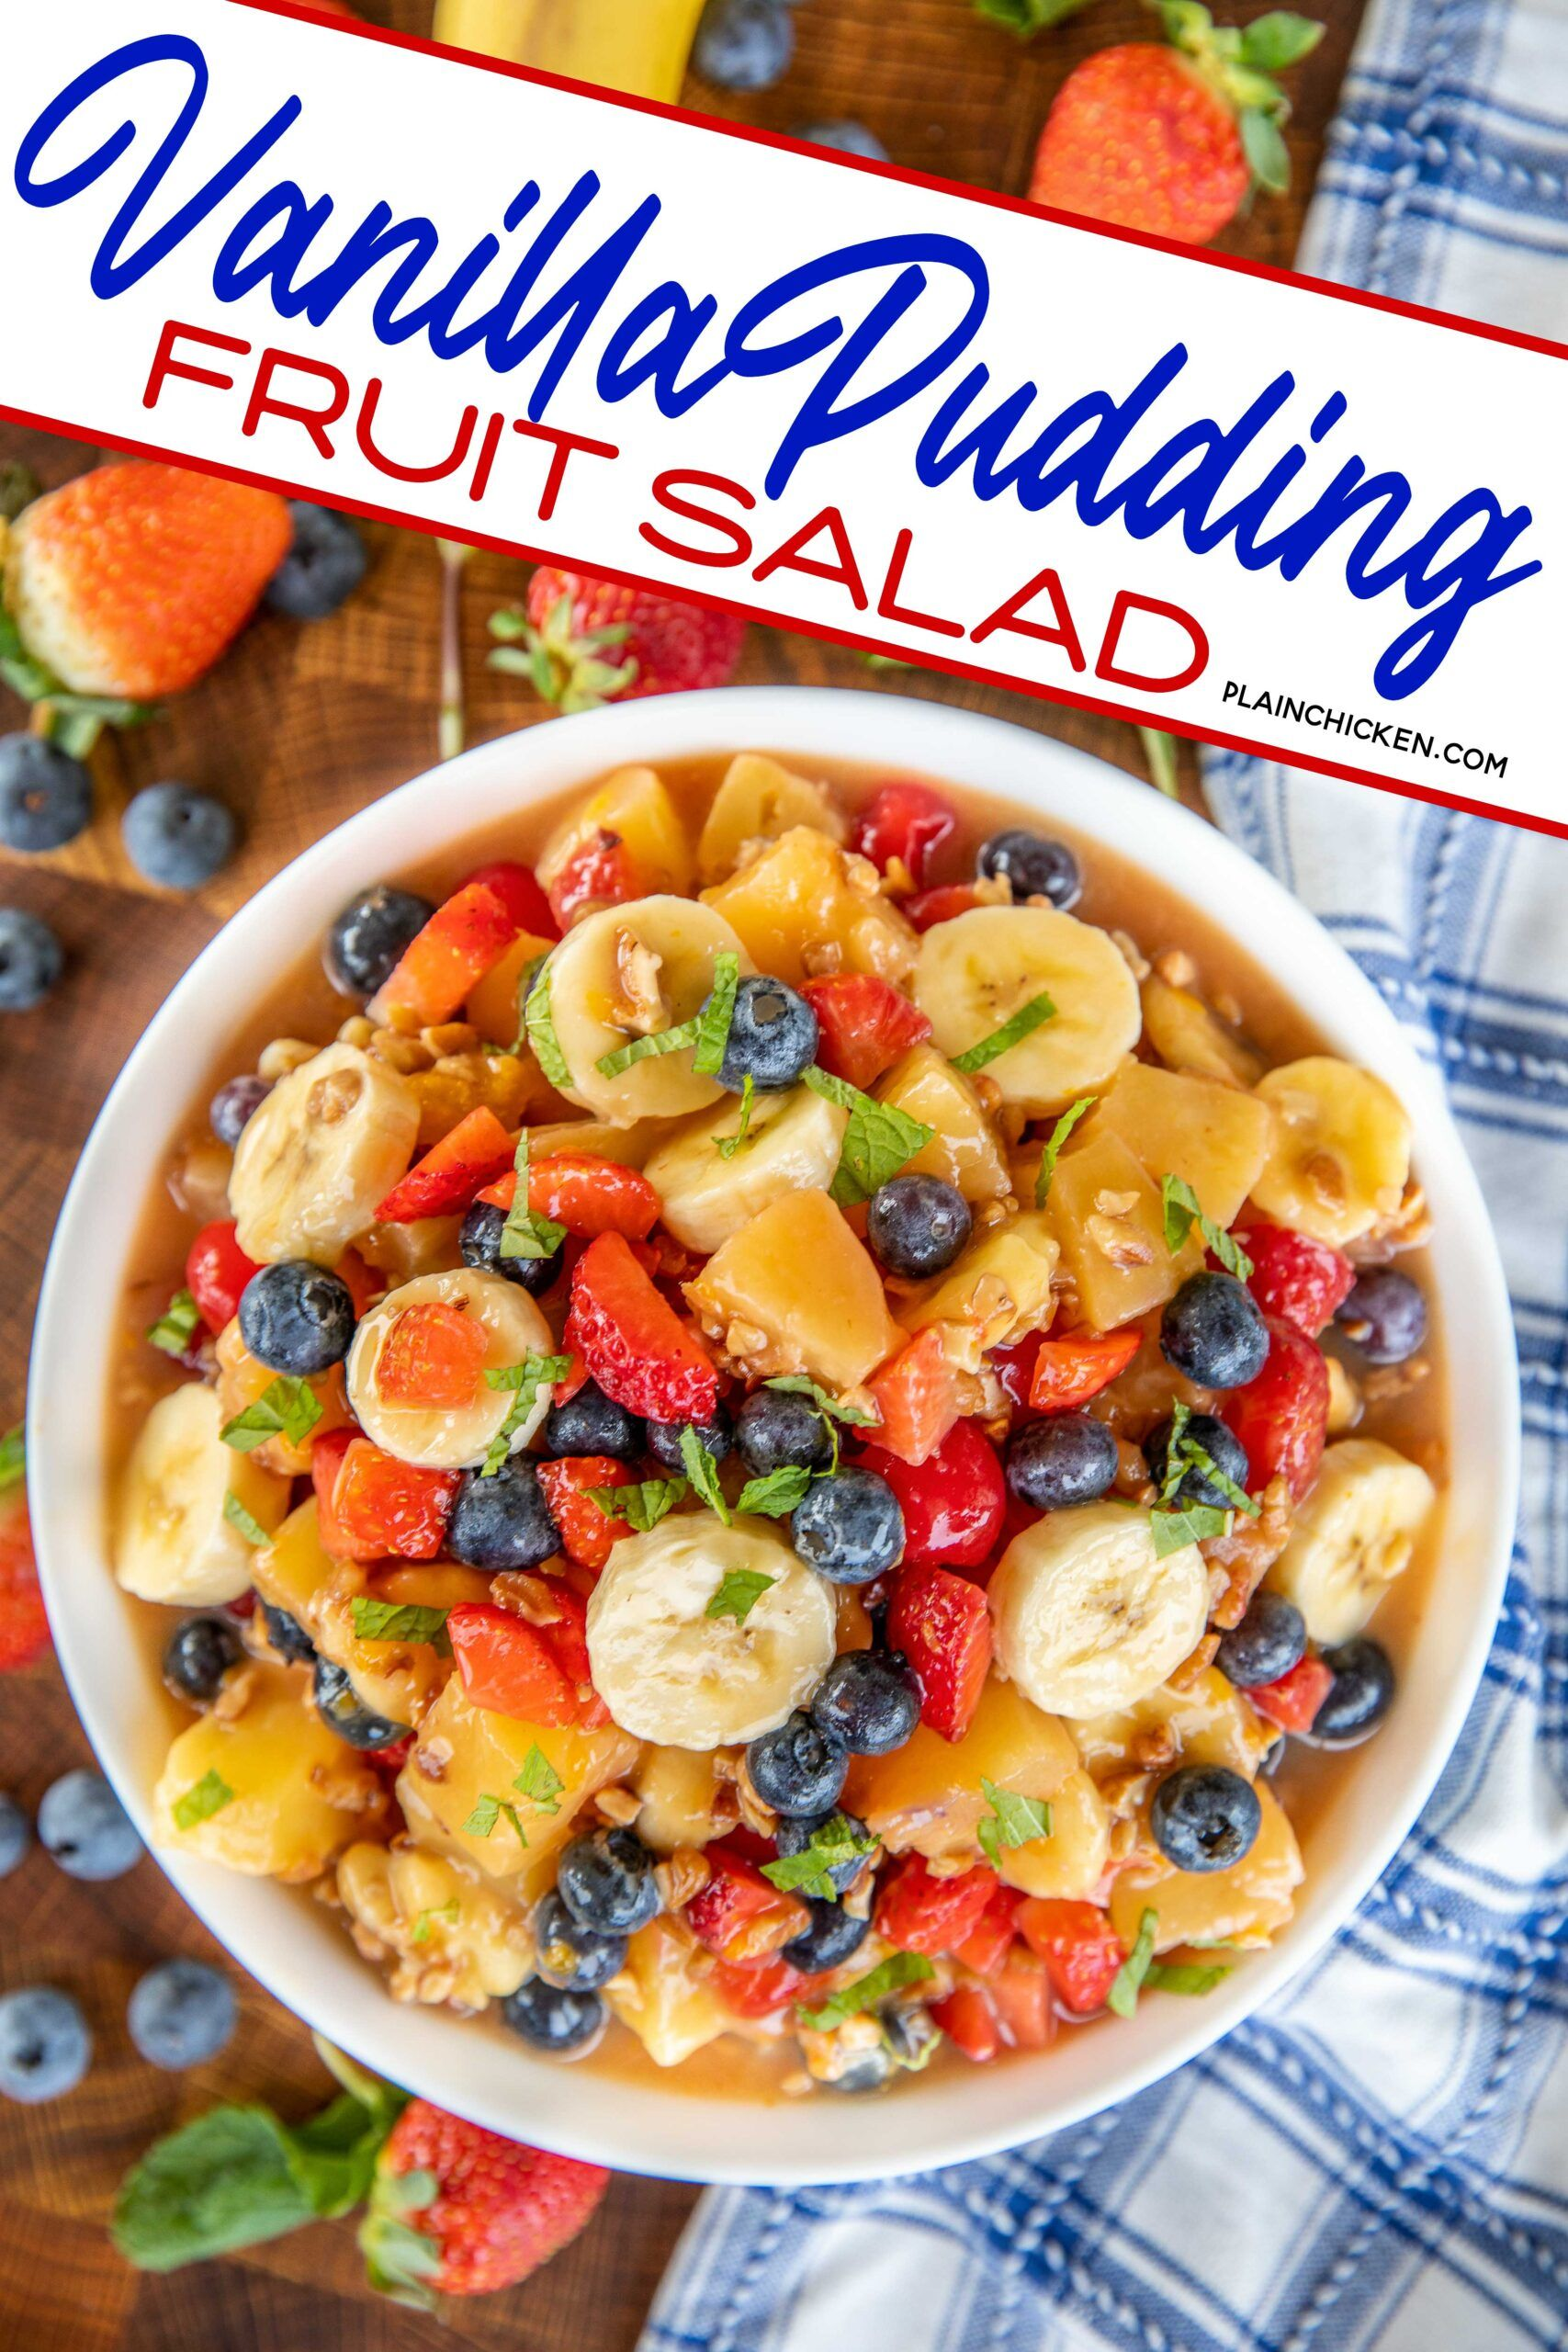 Vanilla Pudding Fruit Salad - so simple and so delicious. Pineapple, mandarin oranges, cherries, bananas, blueberries, strawberries and pecans tossed in a vanilla pudding glaze. Great for breakfast, brunch, parties, and potlucks. Serve leftovers on top of a slice of cake. #fruit #brunch #pineapple #vanilla